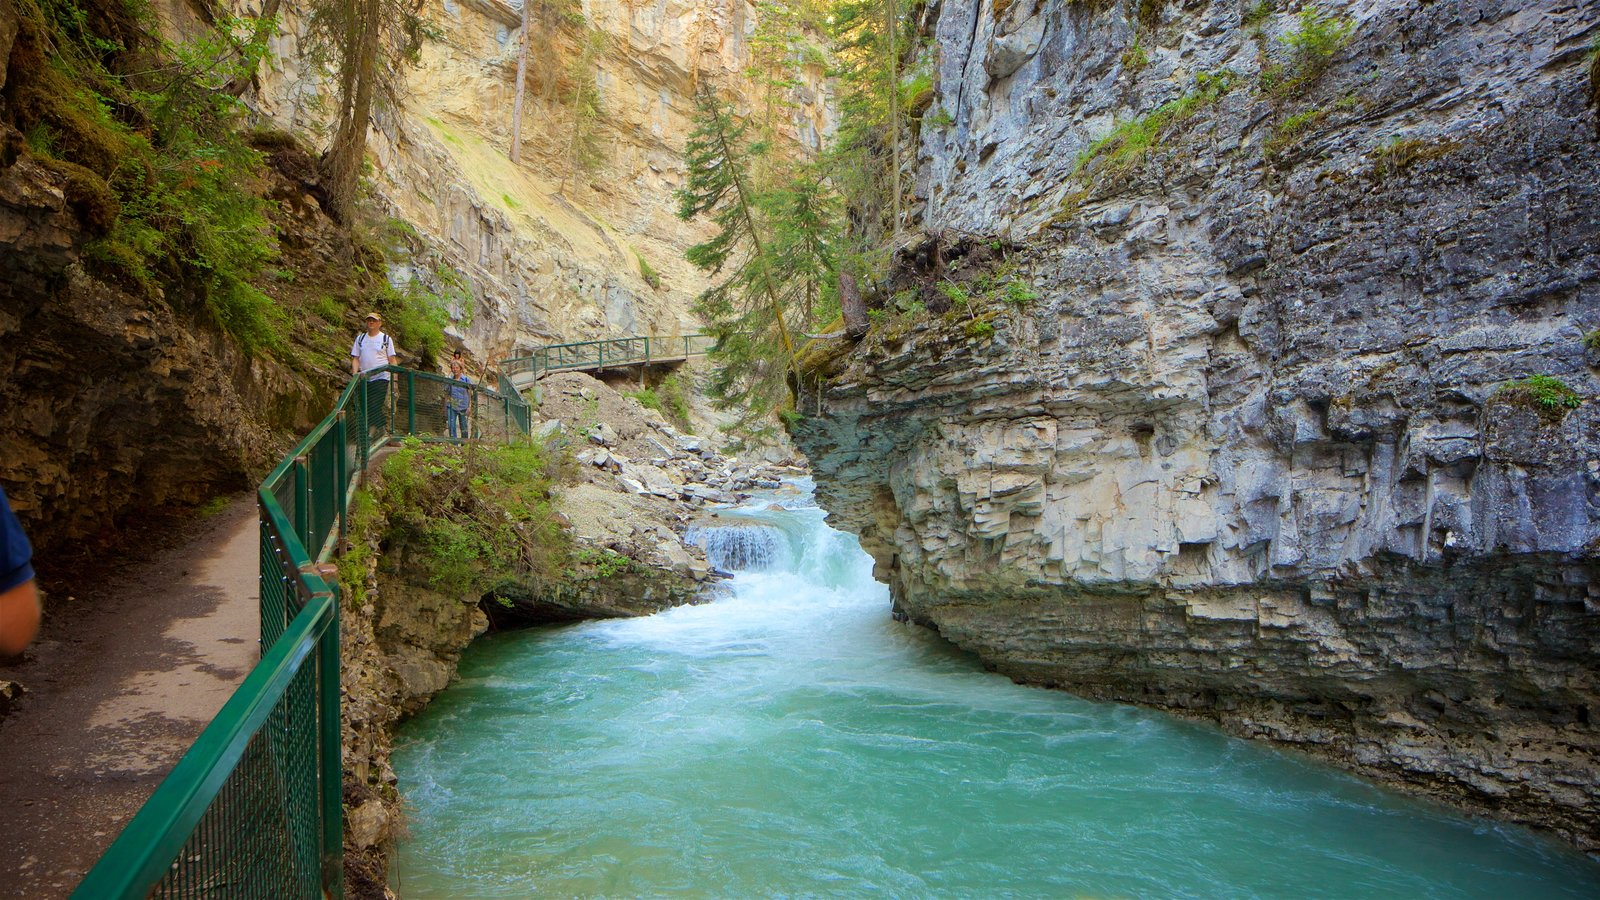 Johnston Canyon showing a river or creek and a gorge or canyon